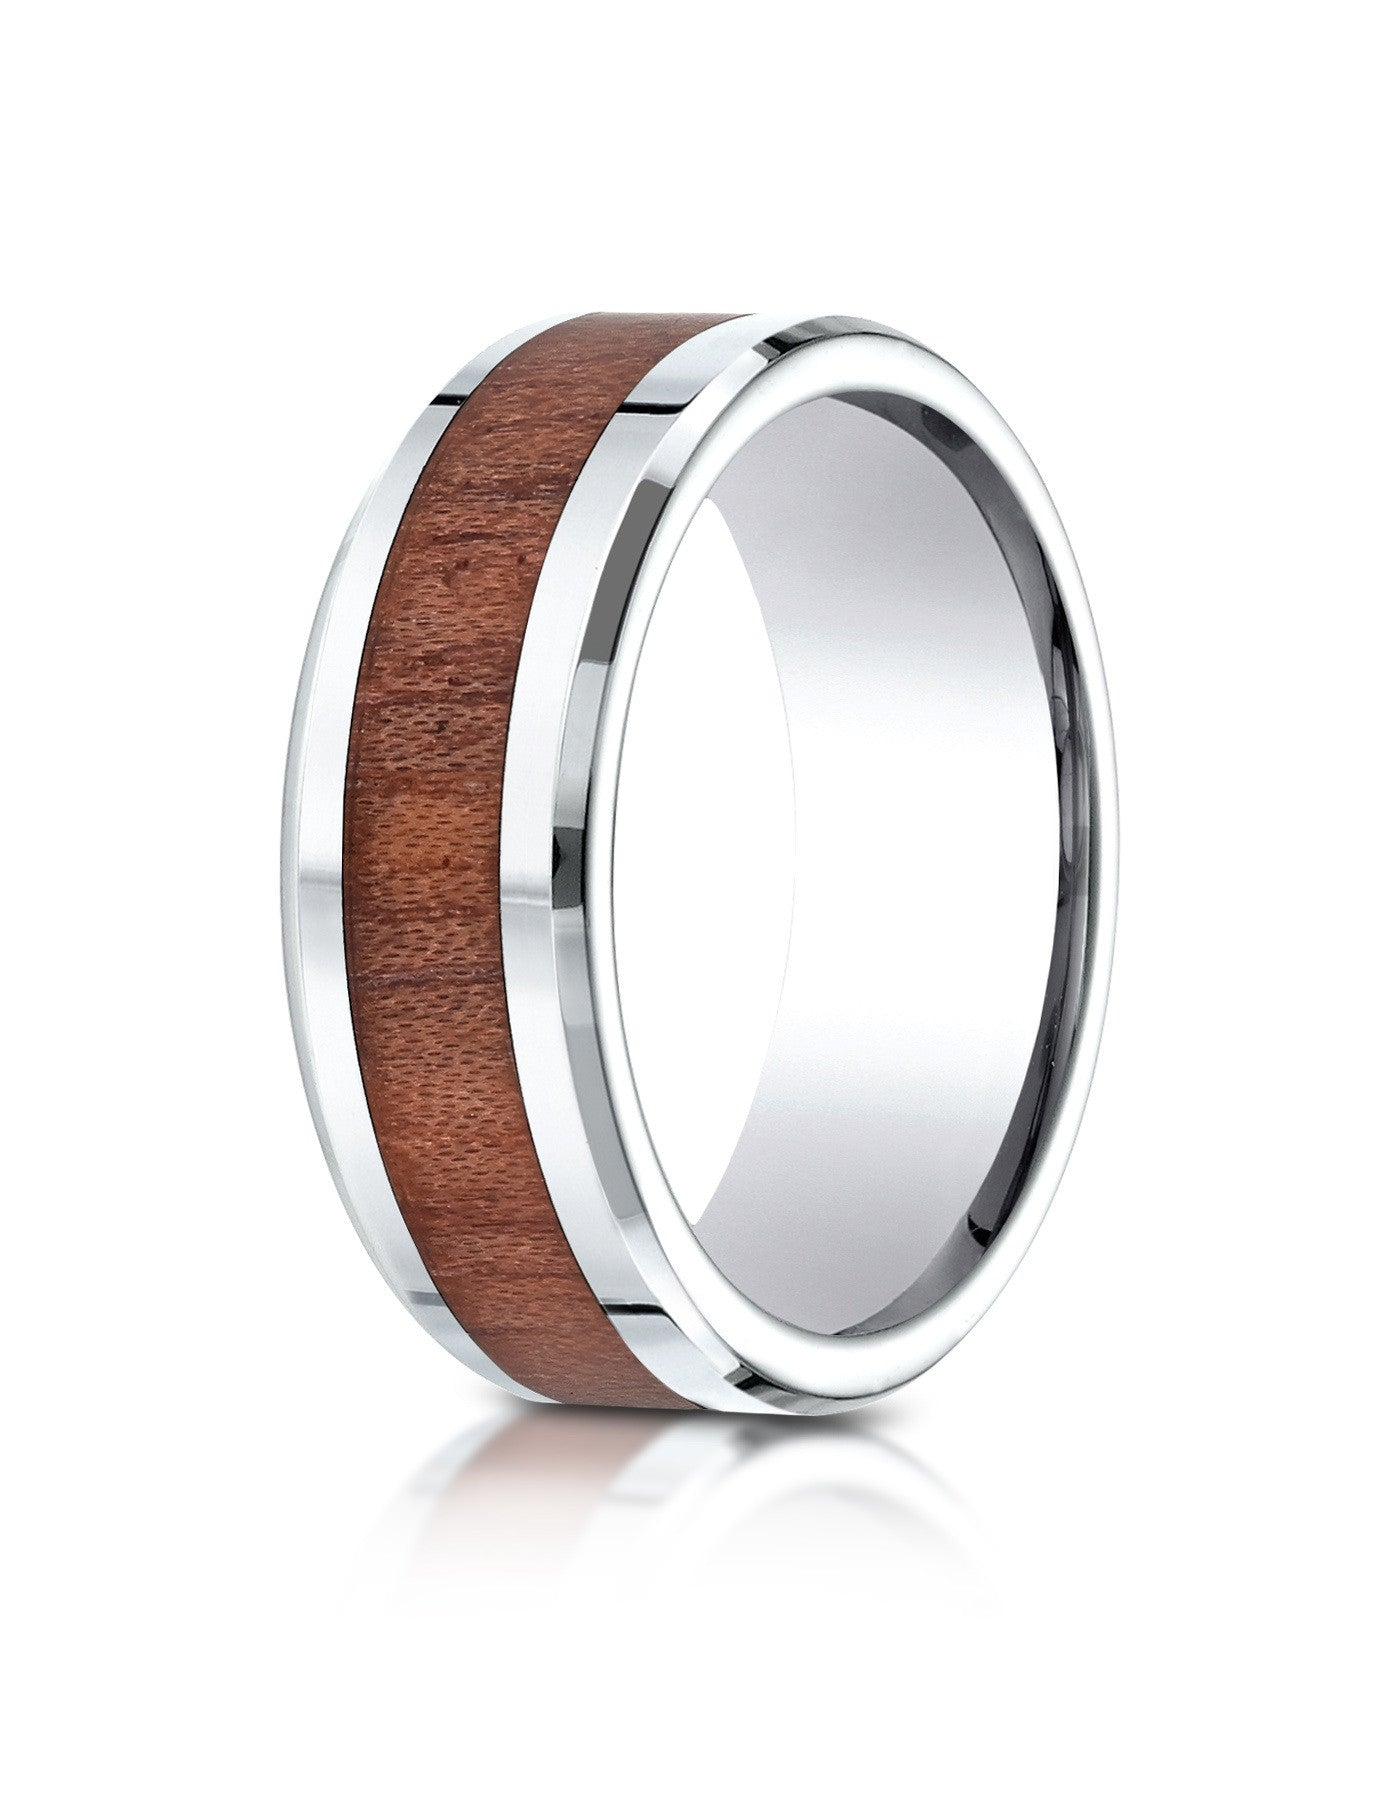 turin mens cobalt beveled rosewood inlay cobalt wedding band - Cobalt Wedding Rings